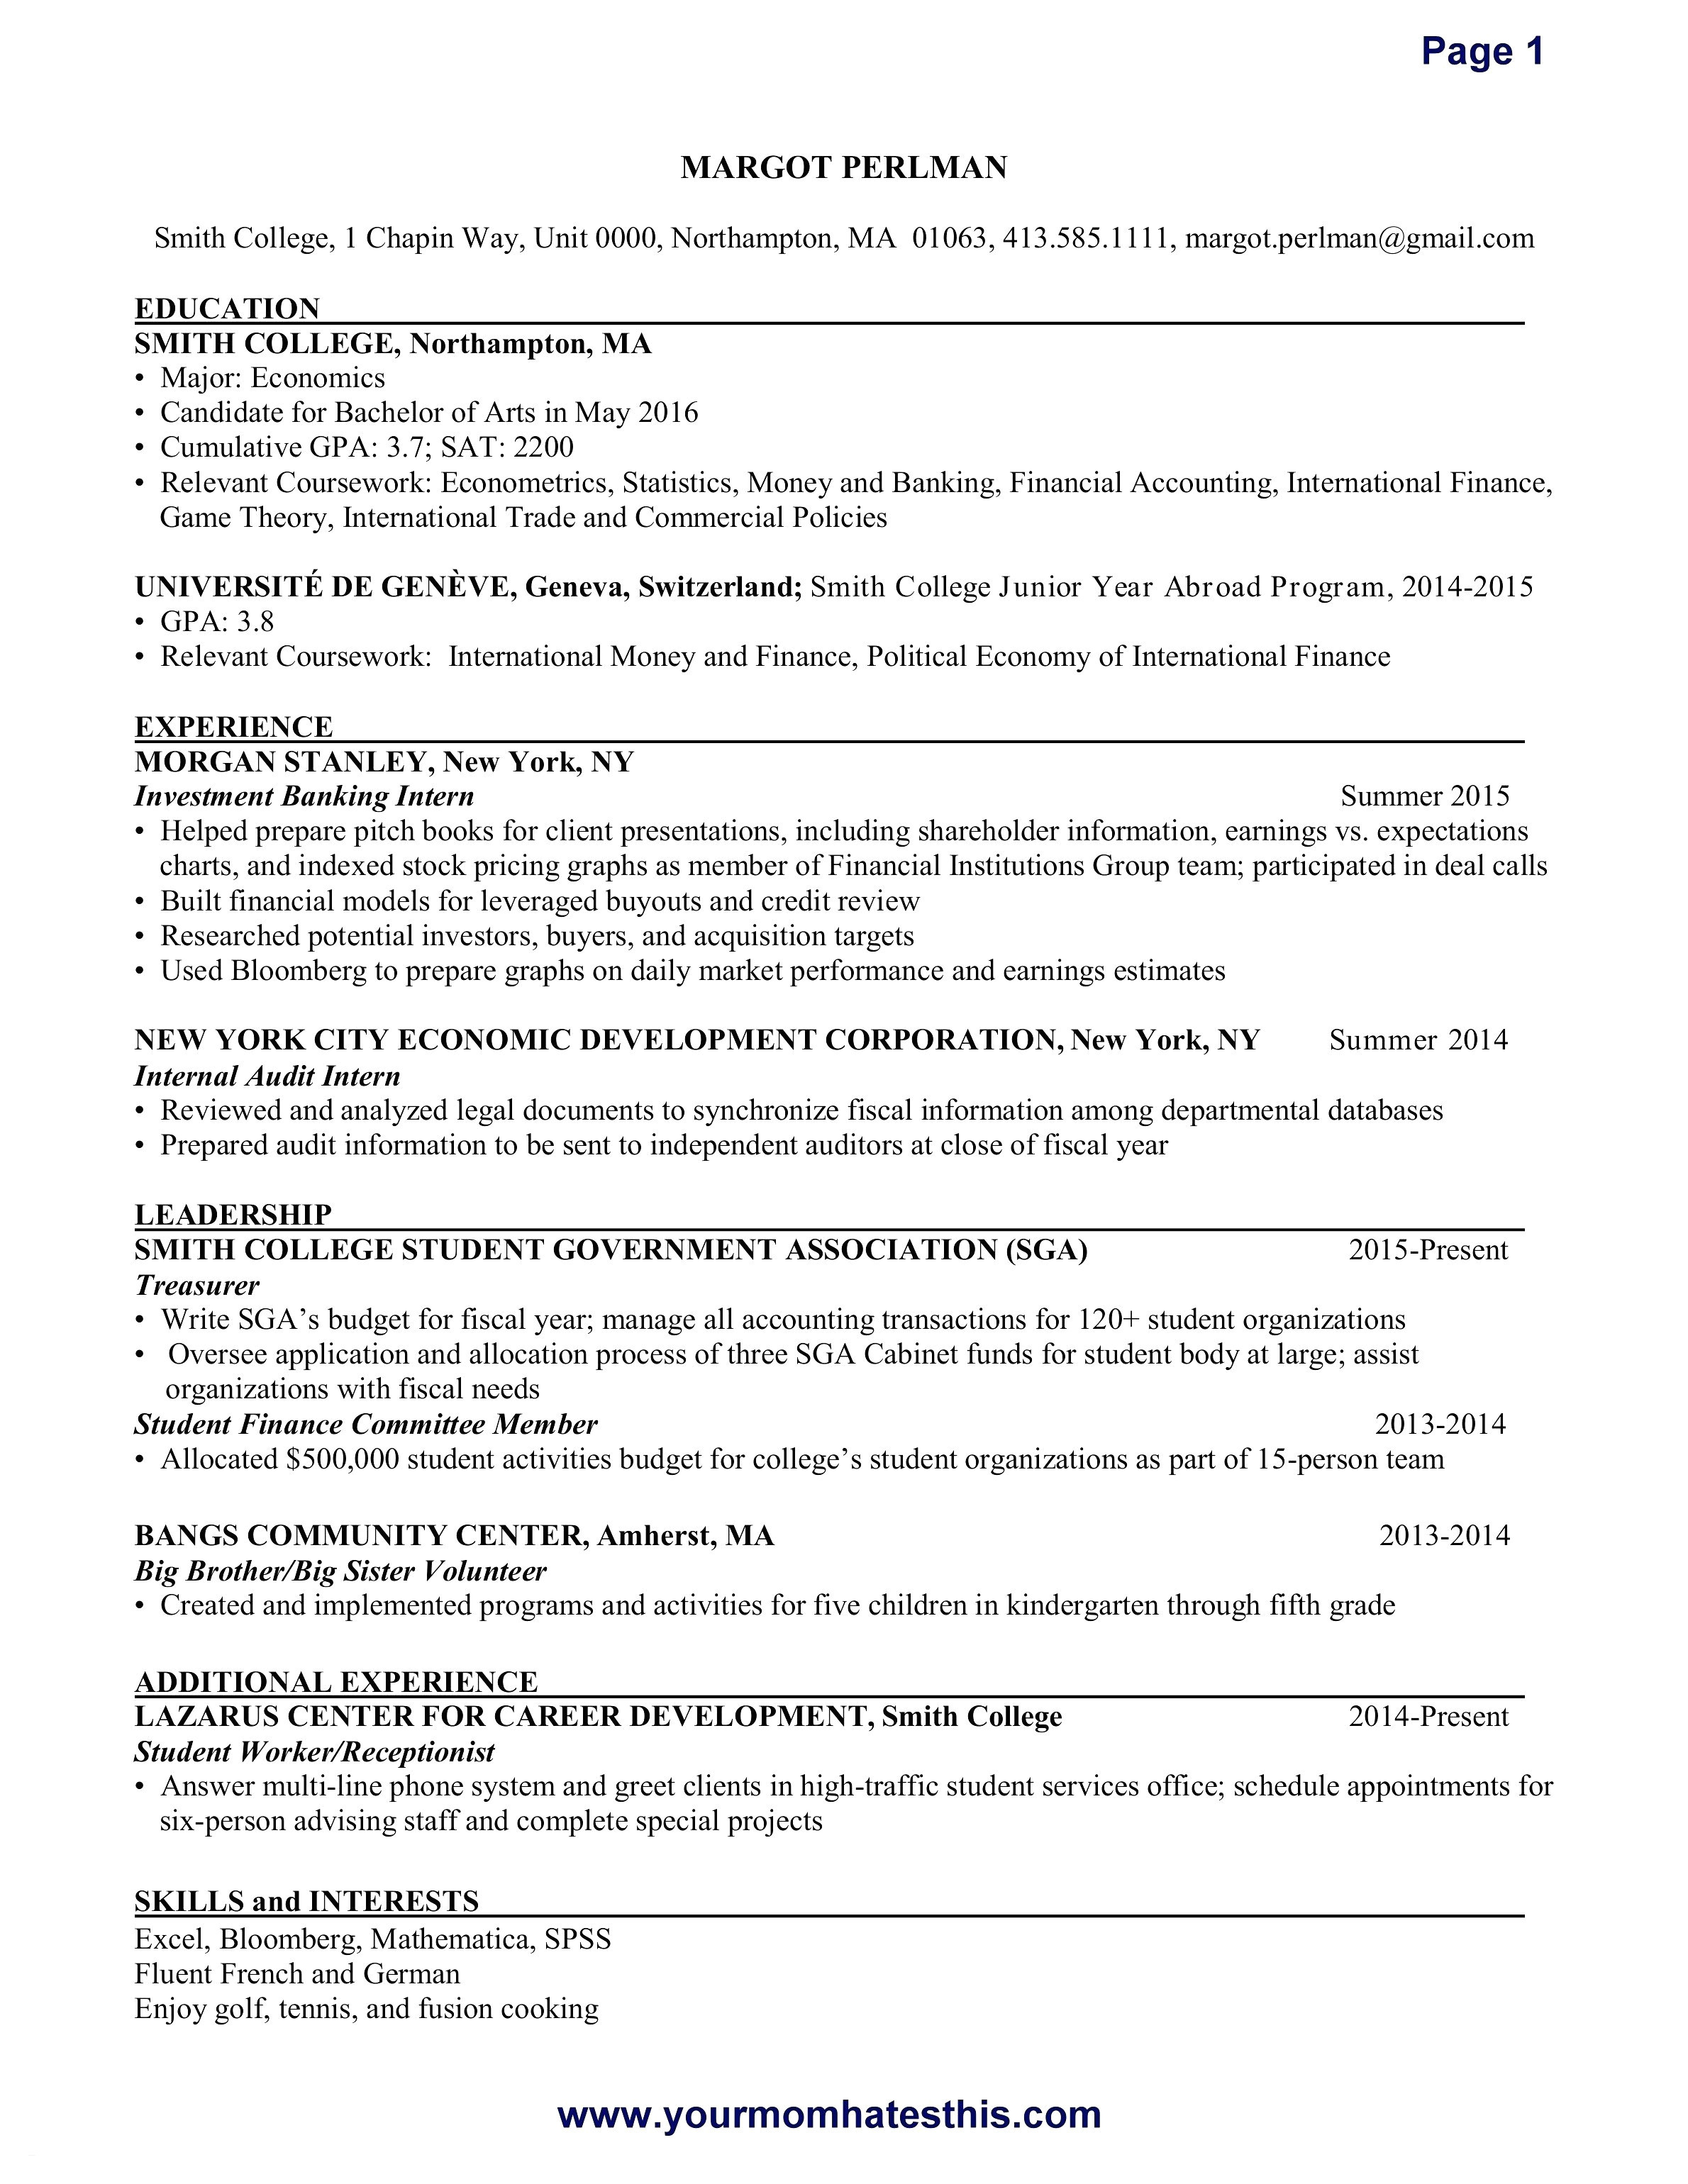 French Resume Template - Awesome Security Ficer Resume Sample